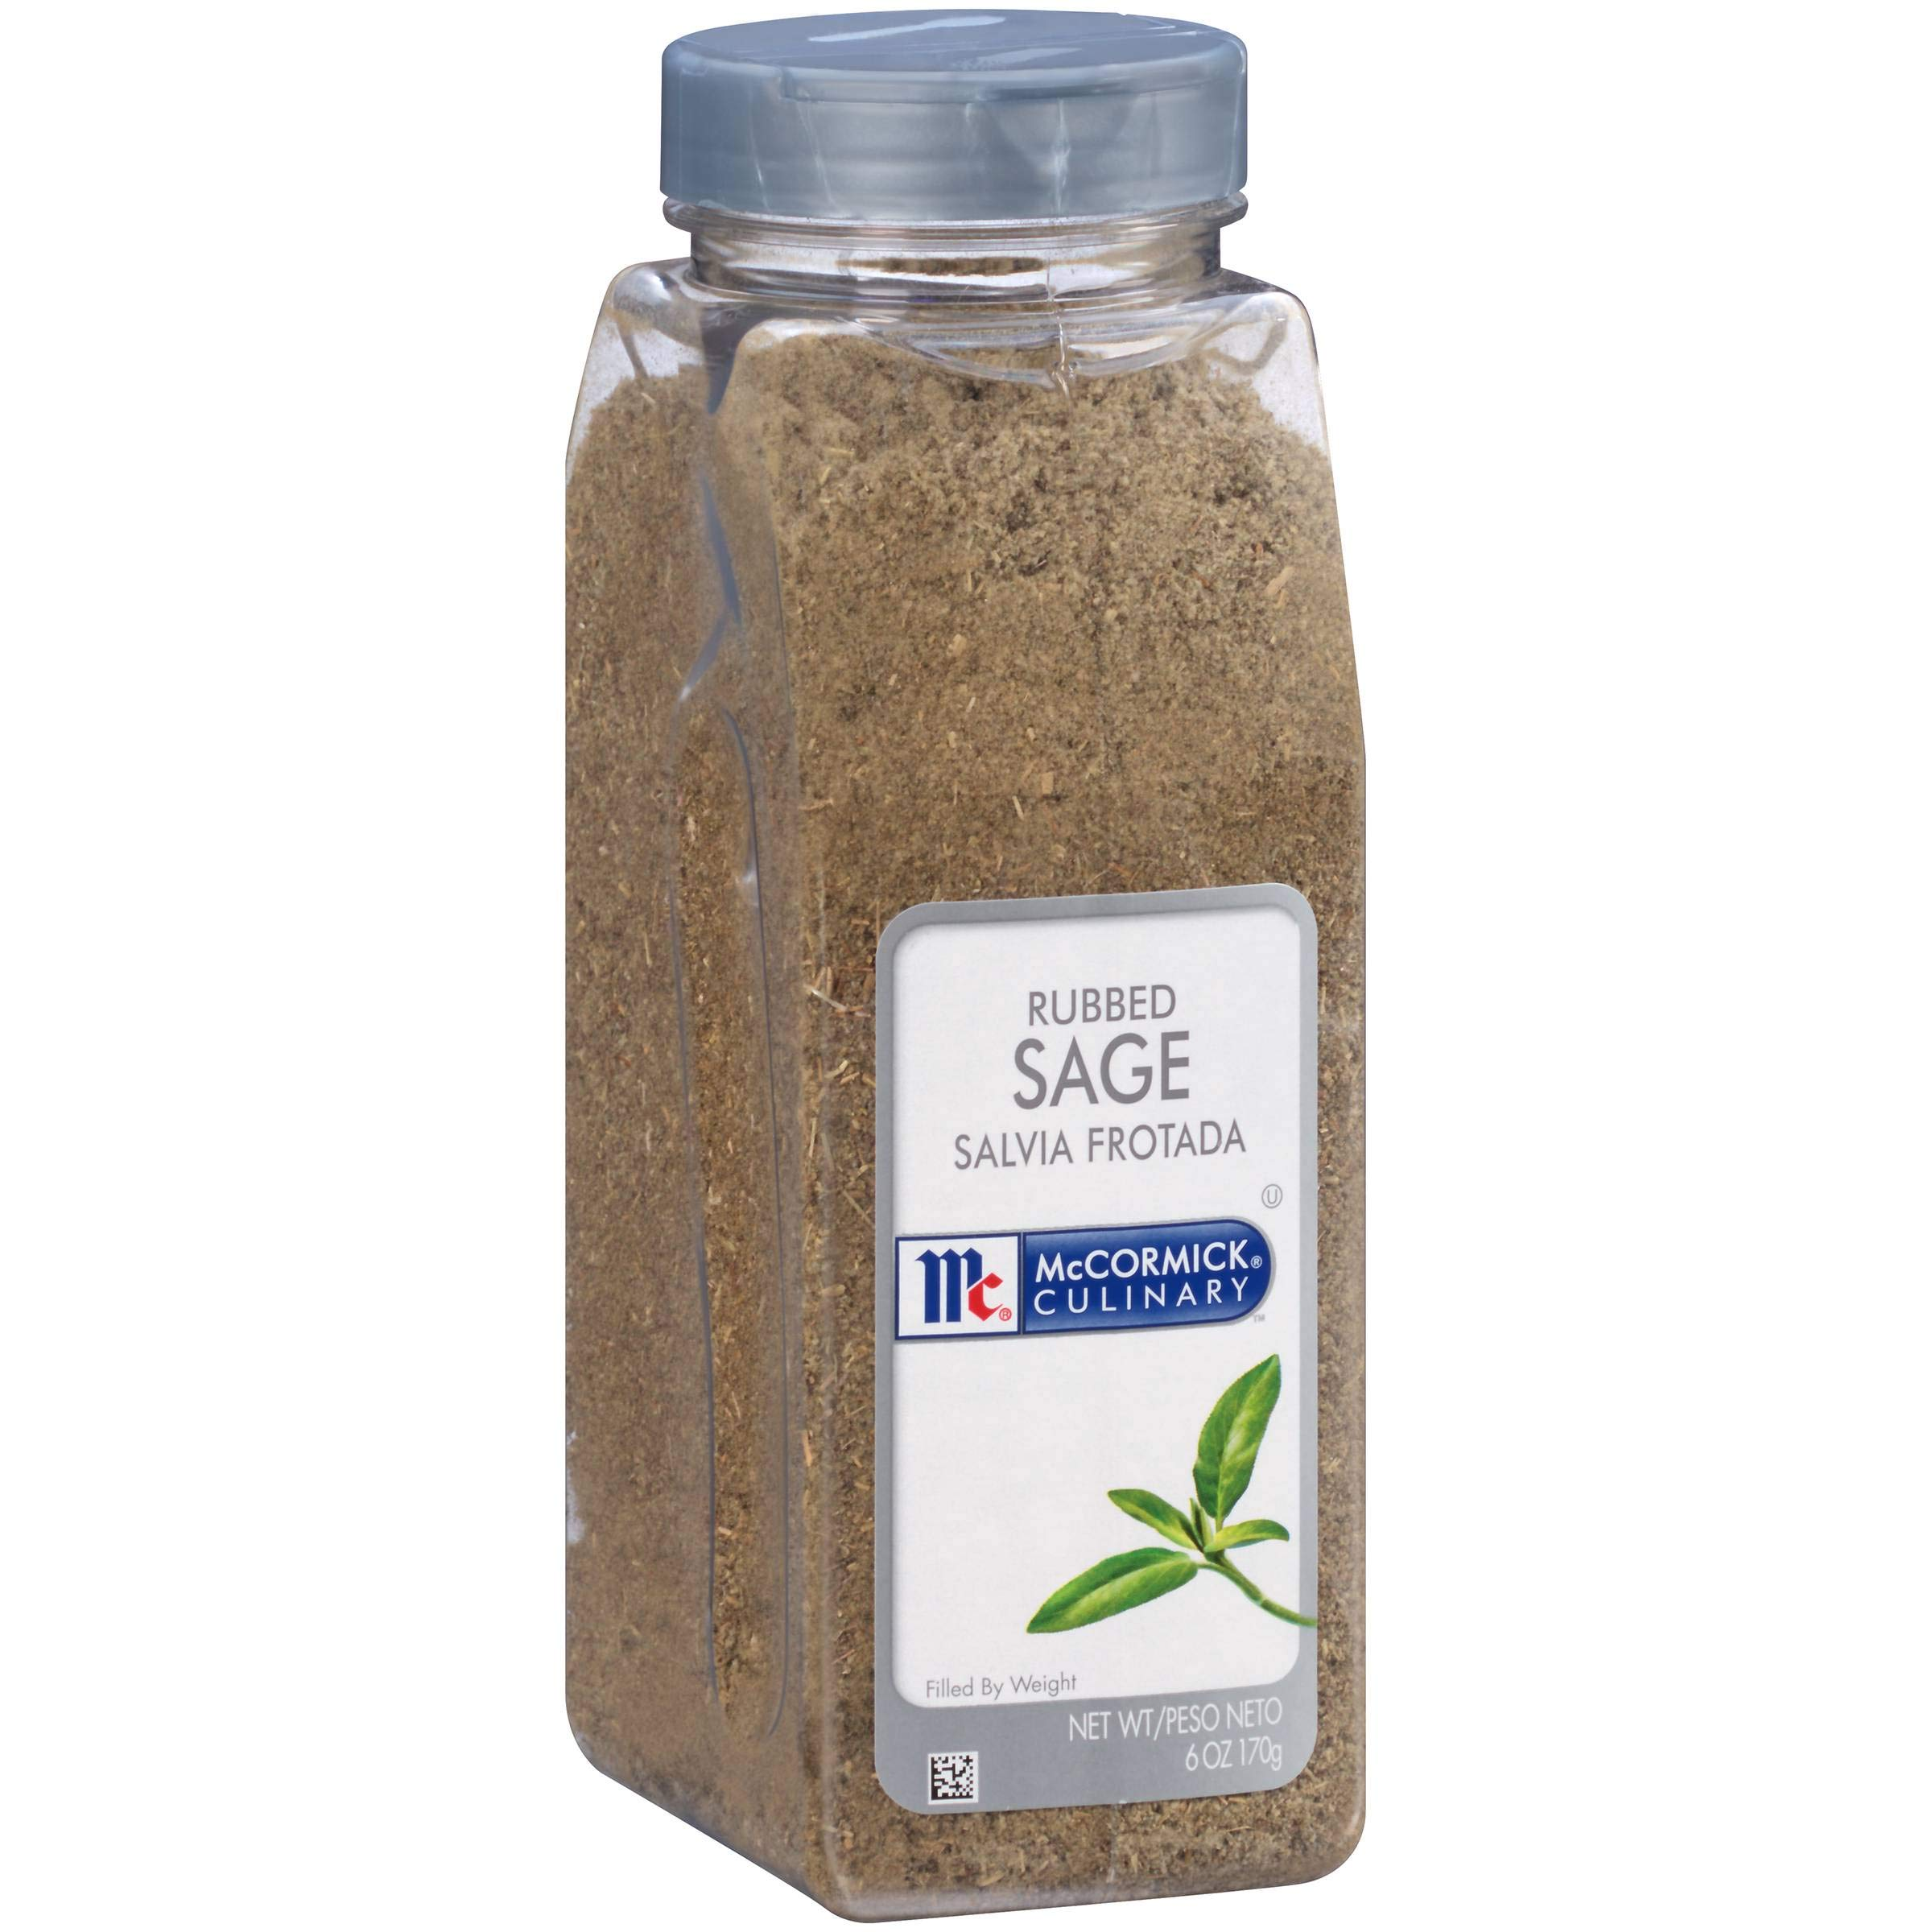 McCormick Rubbed Sage - 6 oz. container, 6 per case by McCormick